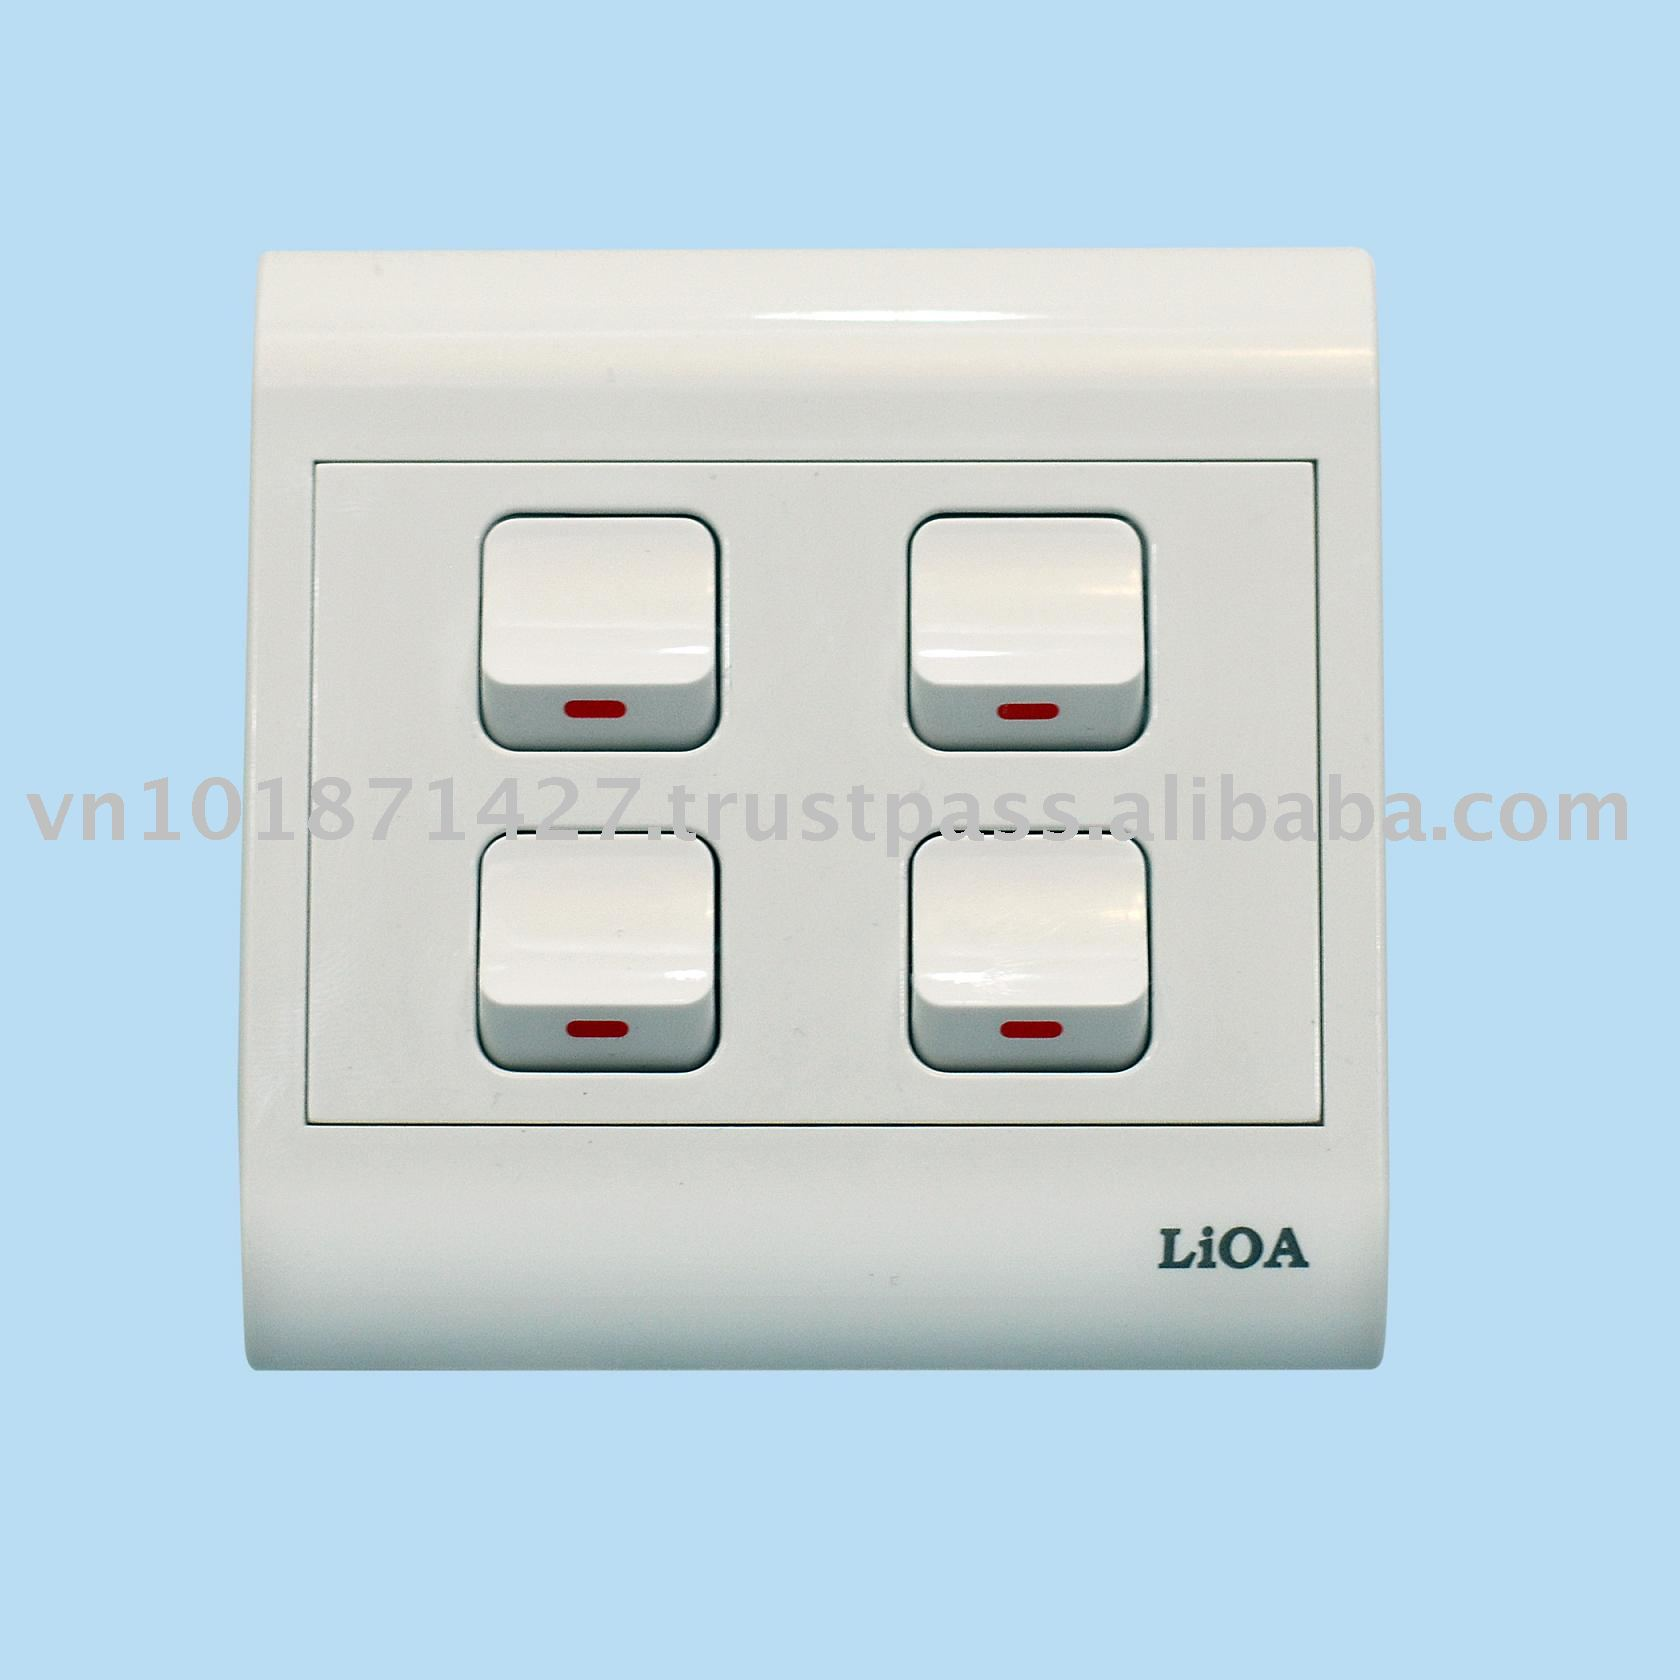 Lioa Wall Switch, Lioa Wall Switch Suppliers and Manufacturers at ...